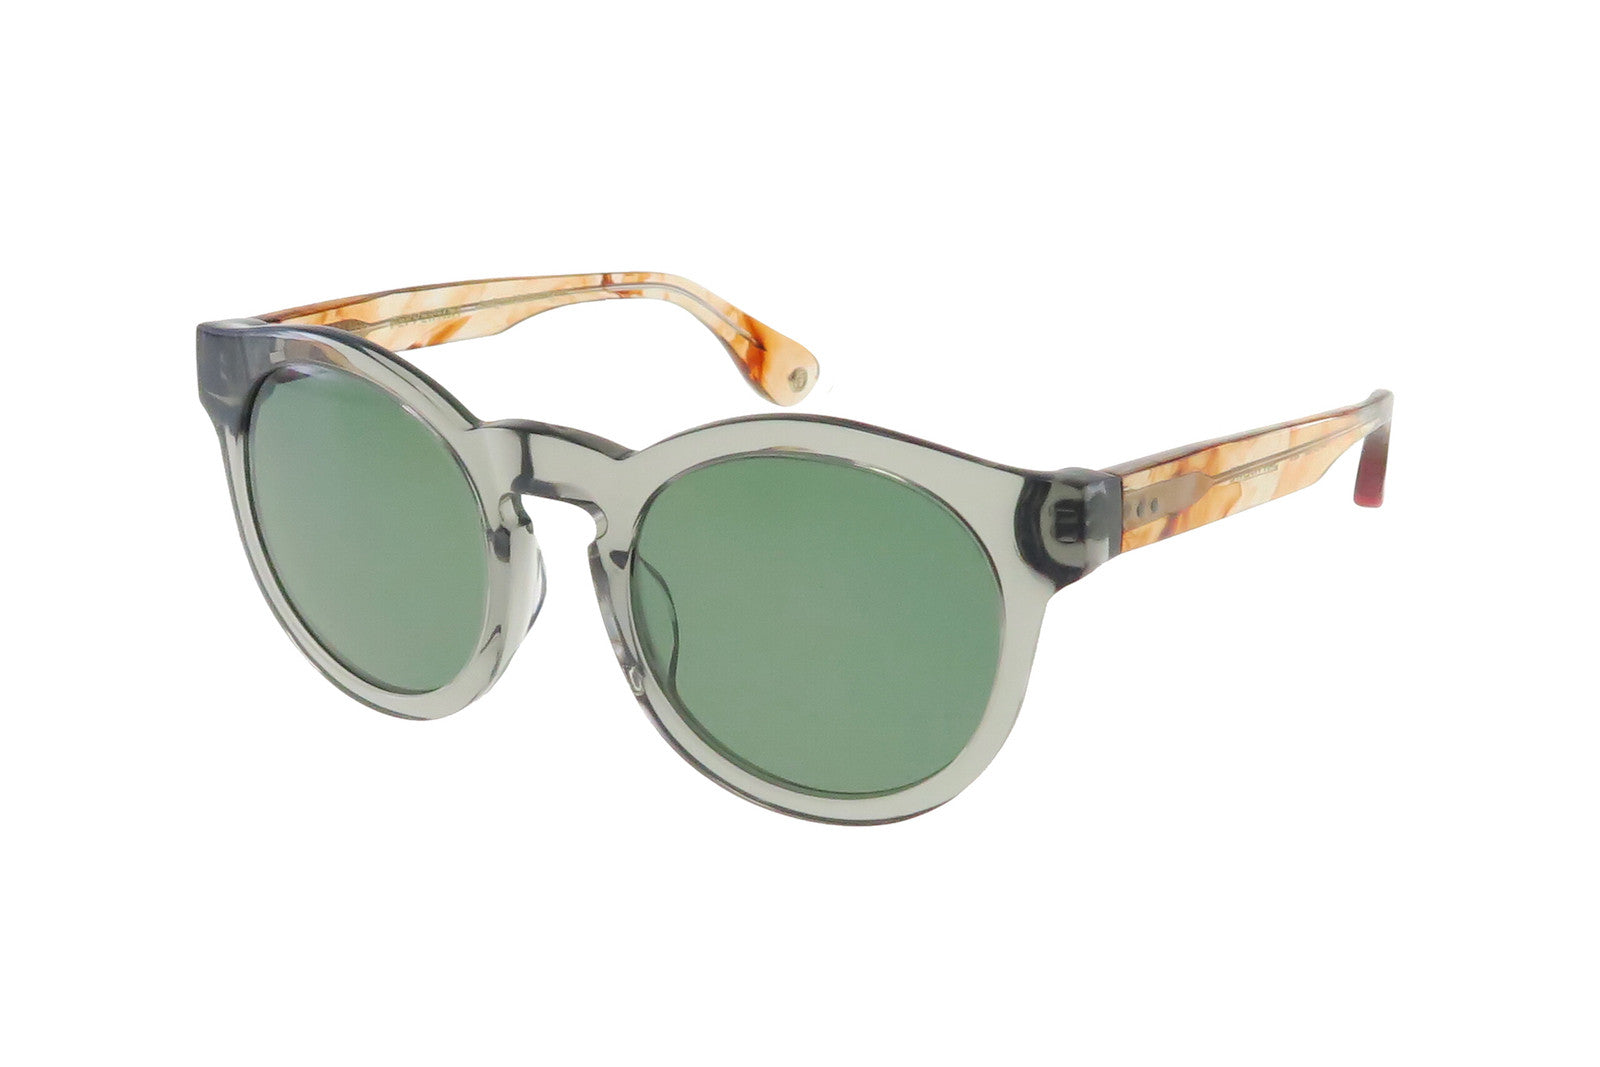 San Vicente 826 - Peppertint - Designer sunglasses